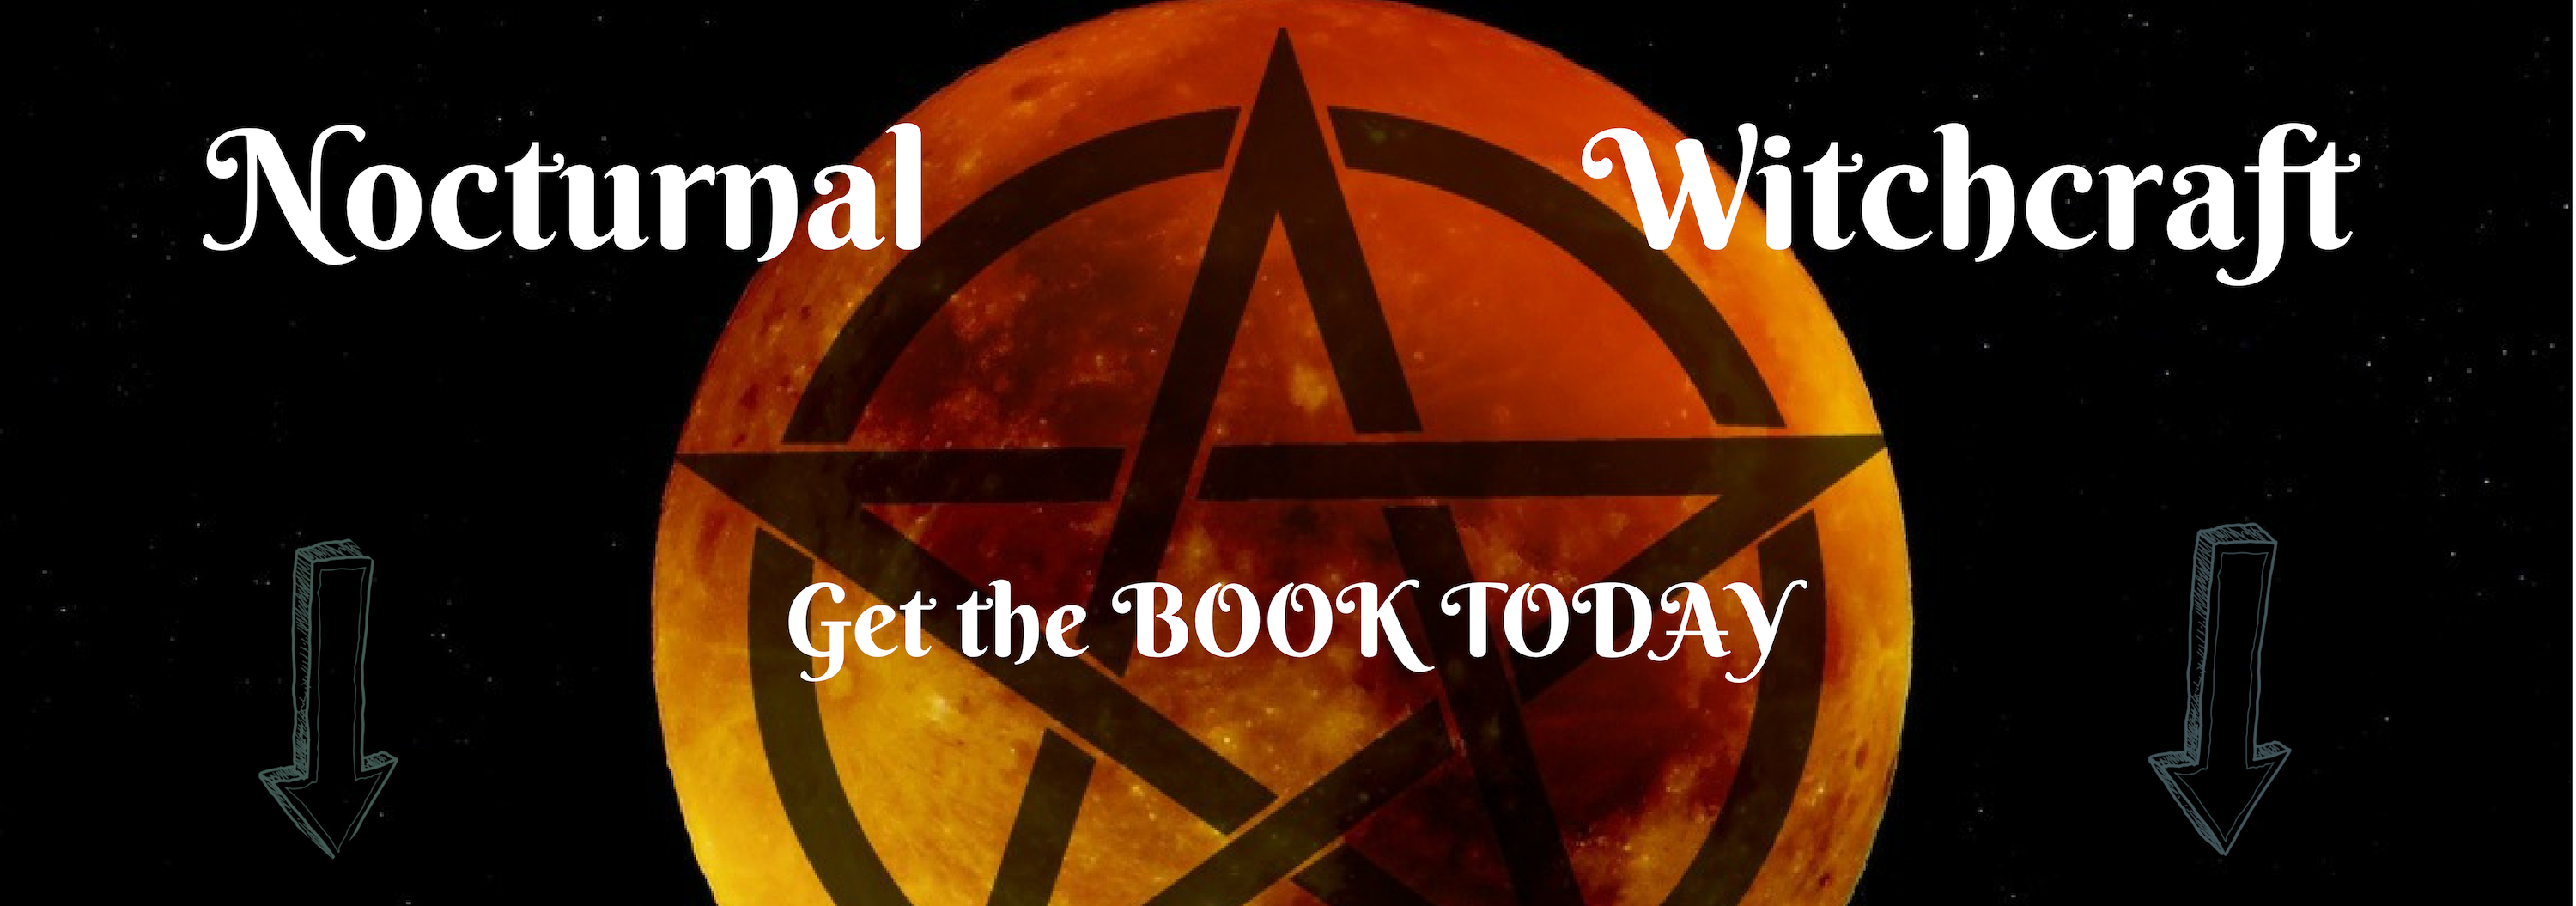 """Waiting in the Shadows, Nocturnal Witchcraft"""" – Tea'sTwigg&Staff"""